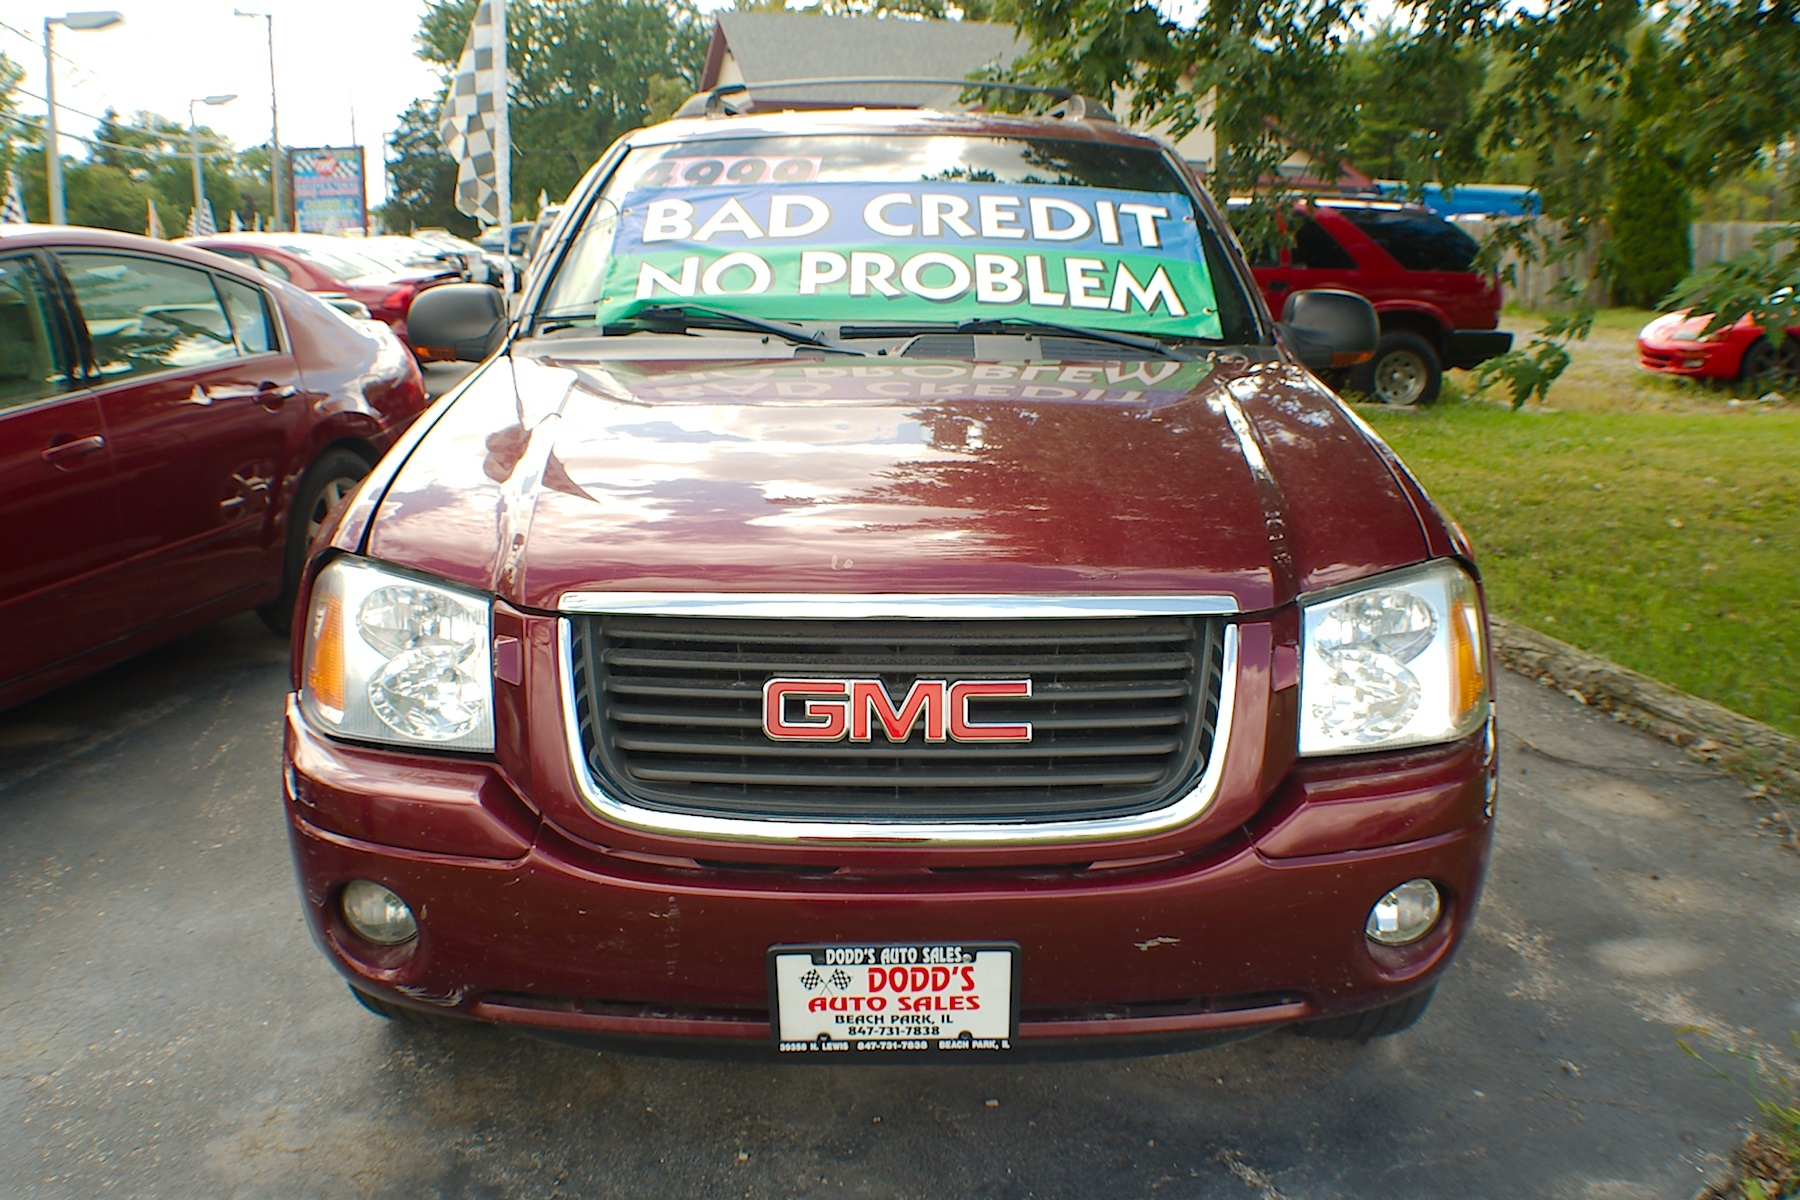 2003 GMC Envoy SLT XL Red SUV Sale Gurnee Kenosha Mchenry Chicago Illinois